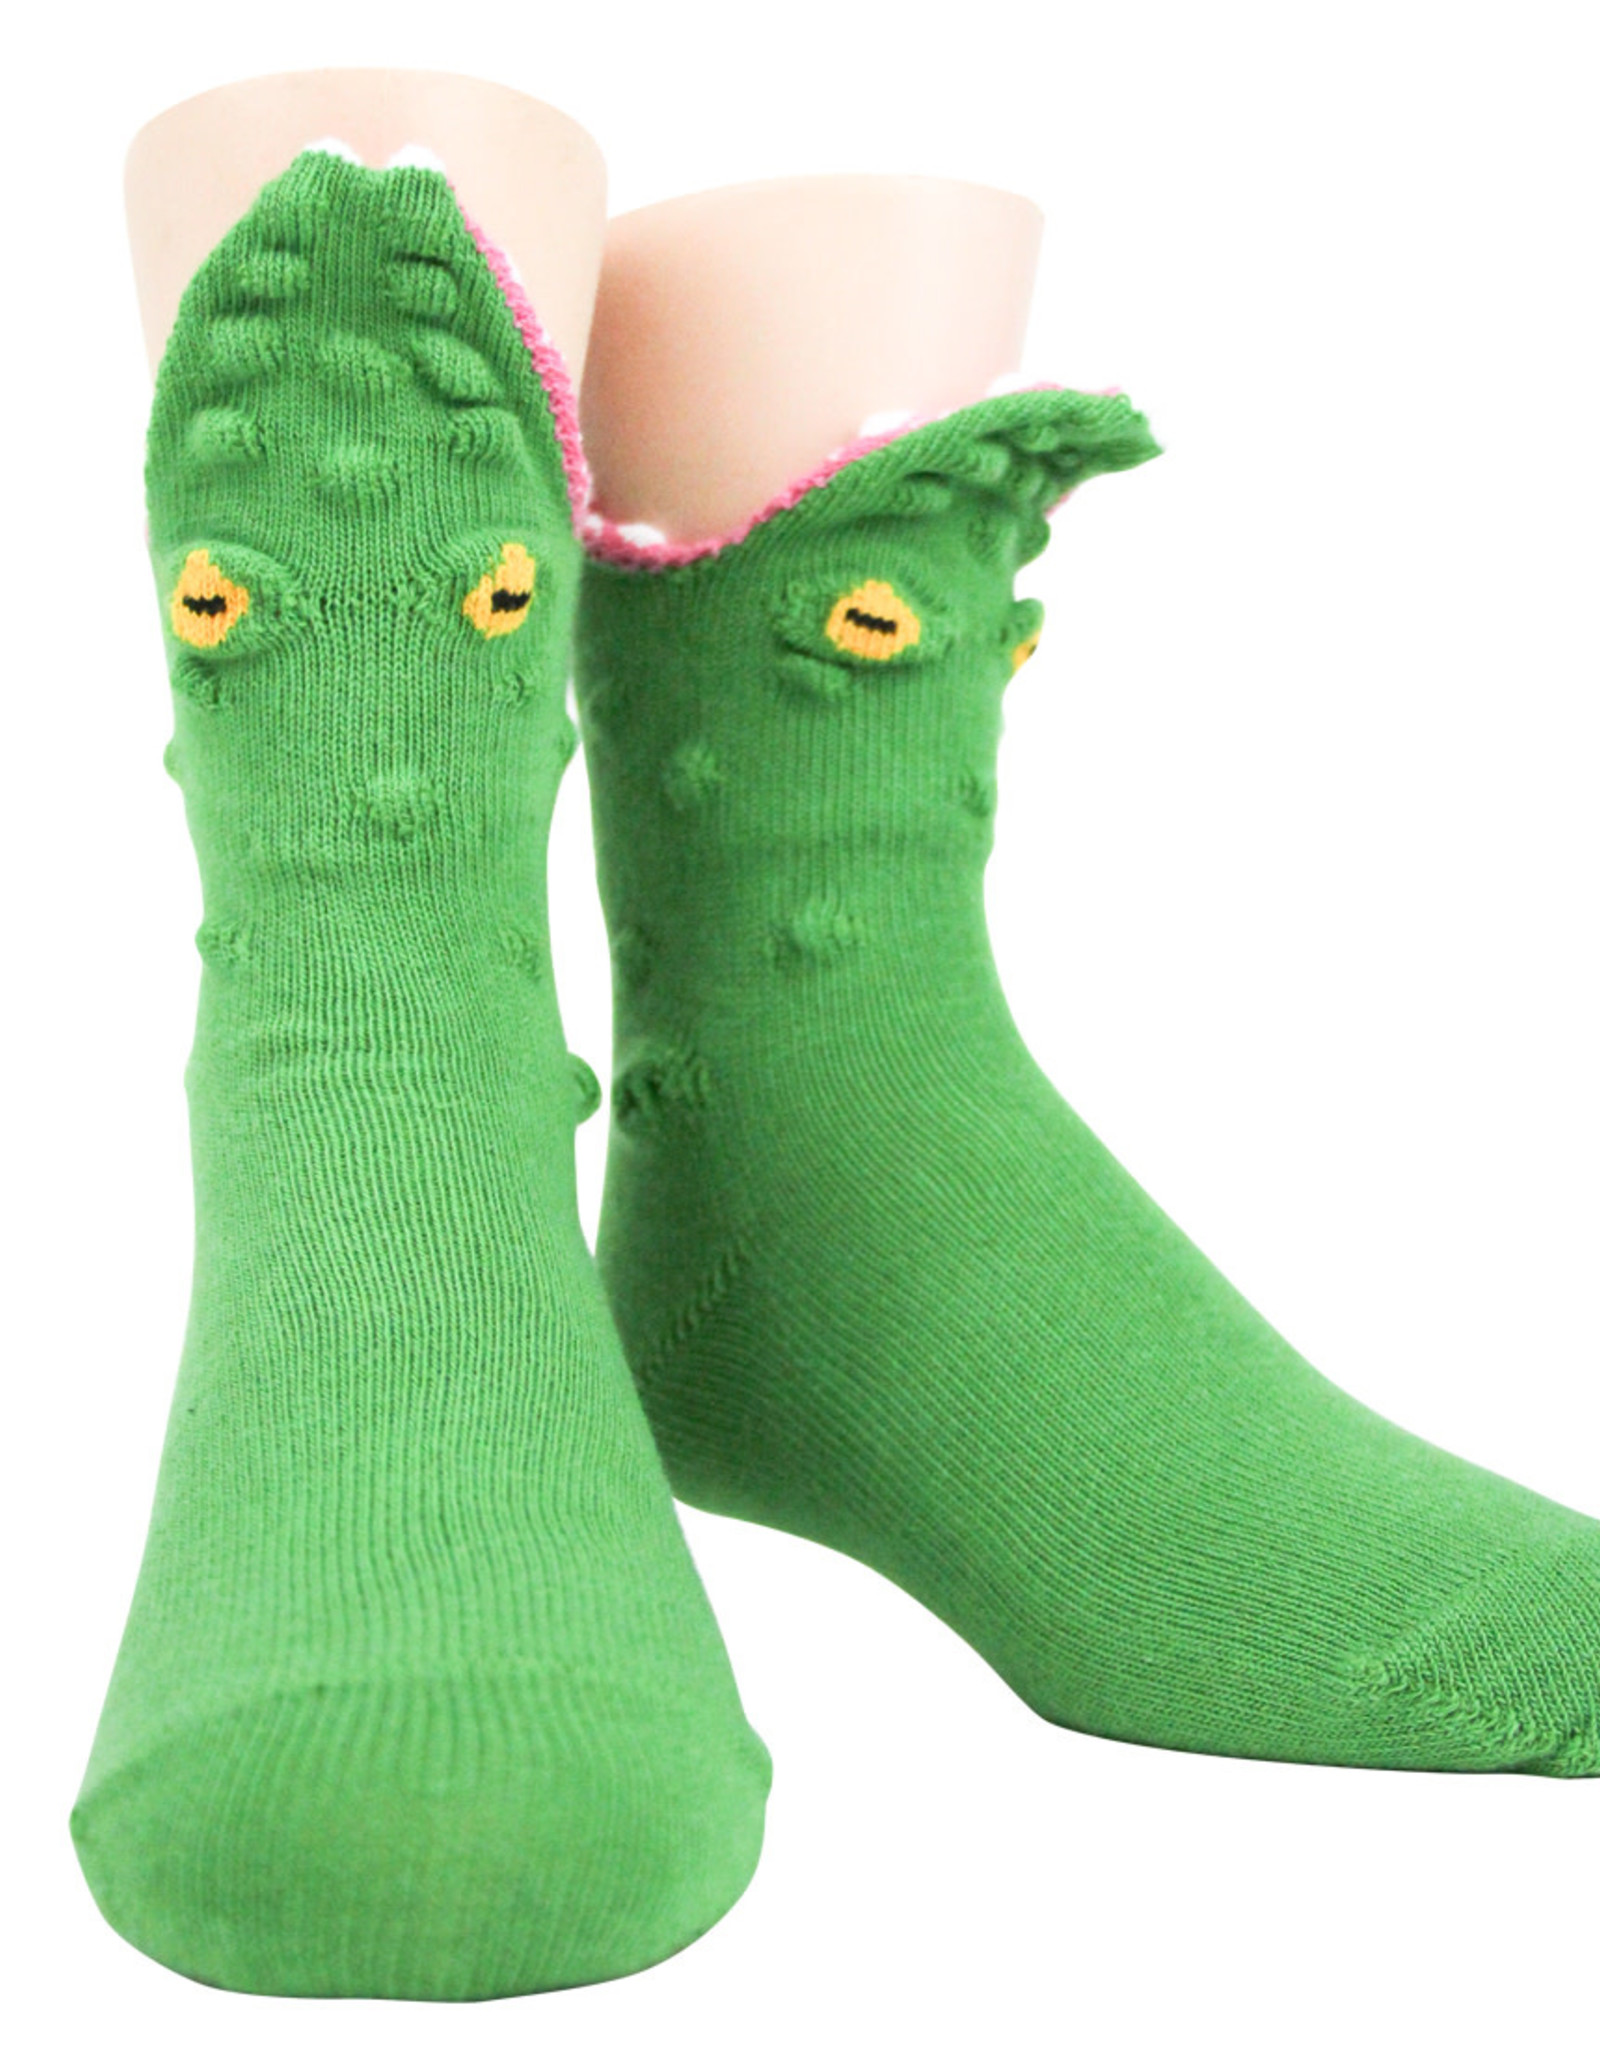 Socks (Kids) - 3D Alligator